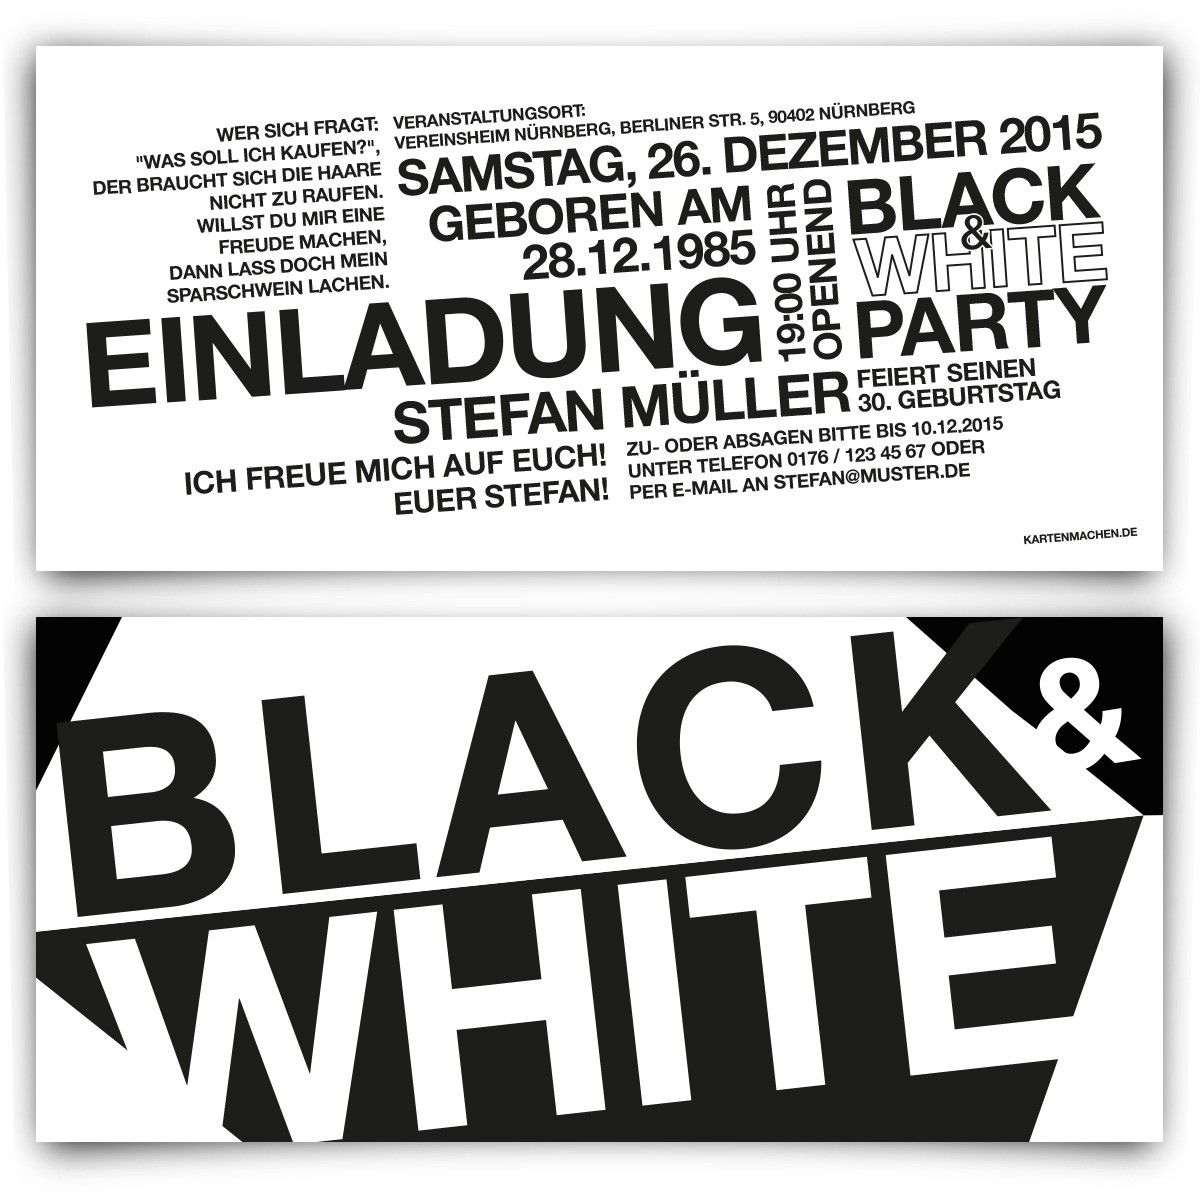 lovely party einladung/party einladungen #1: Black u0026 White Weiß Party Einladungskarten mit eigenem Text!